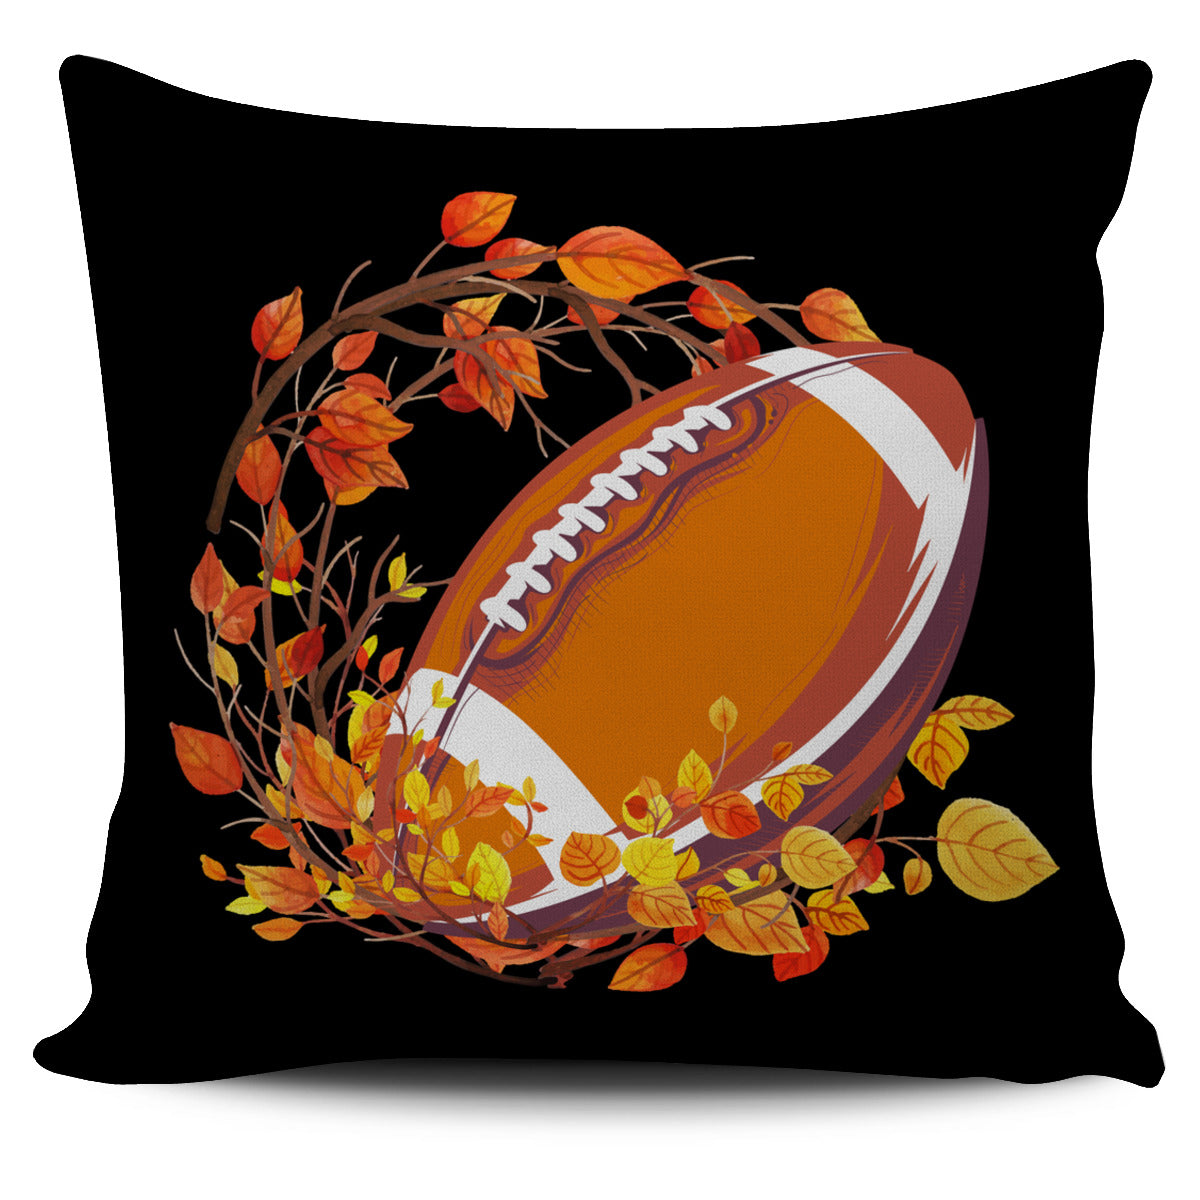 Football Autumn Leaves Pillow Cover EV87